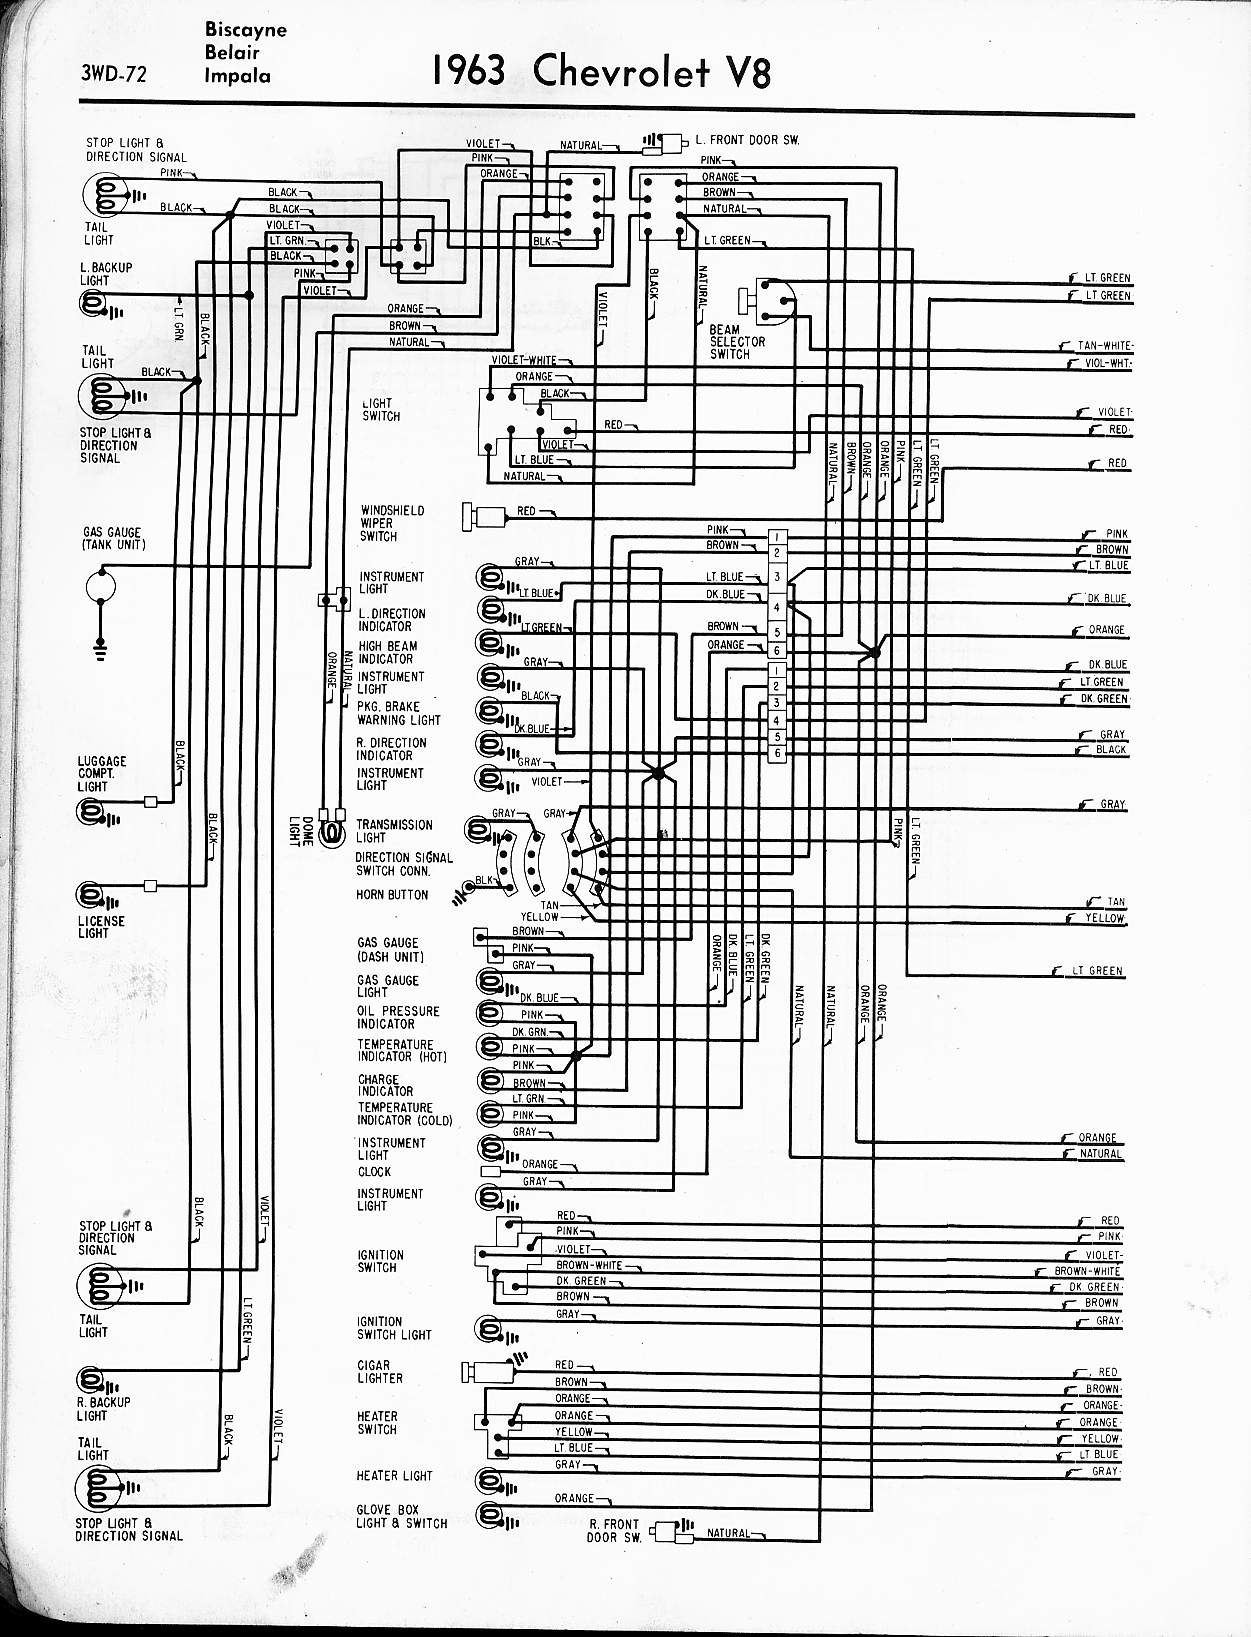 1964 chevy nova wiring diagram cool modular origami wire harness to steering column autos post